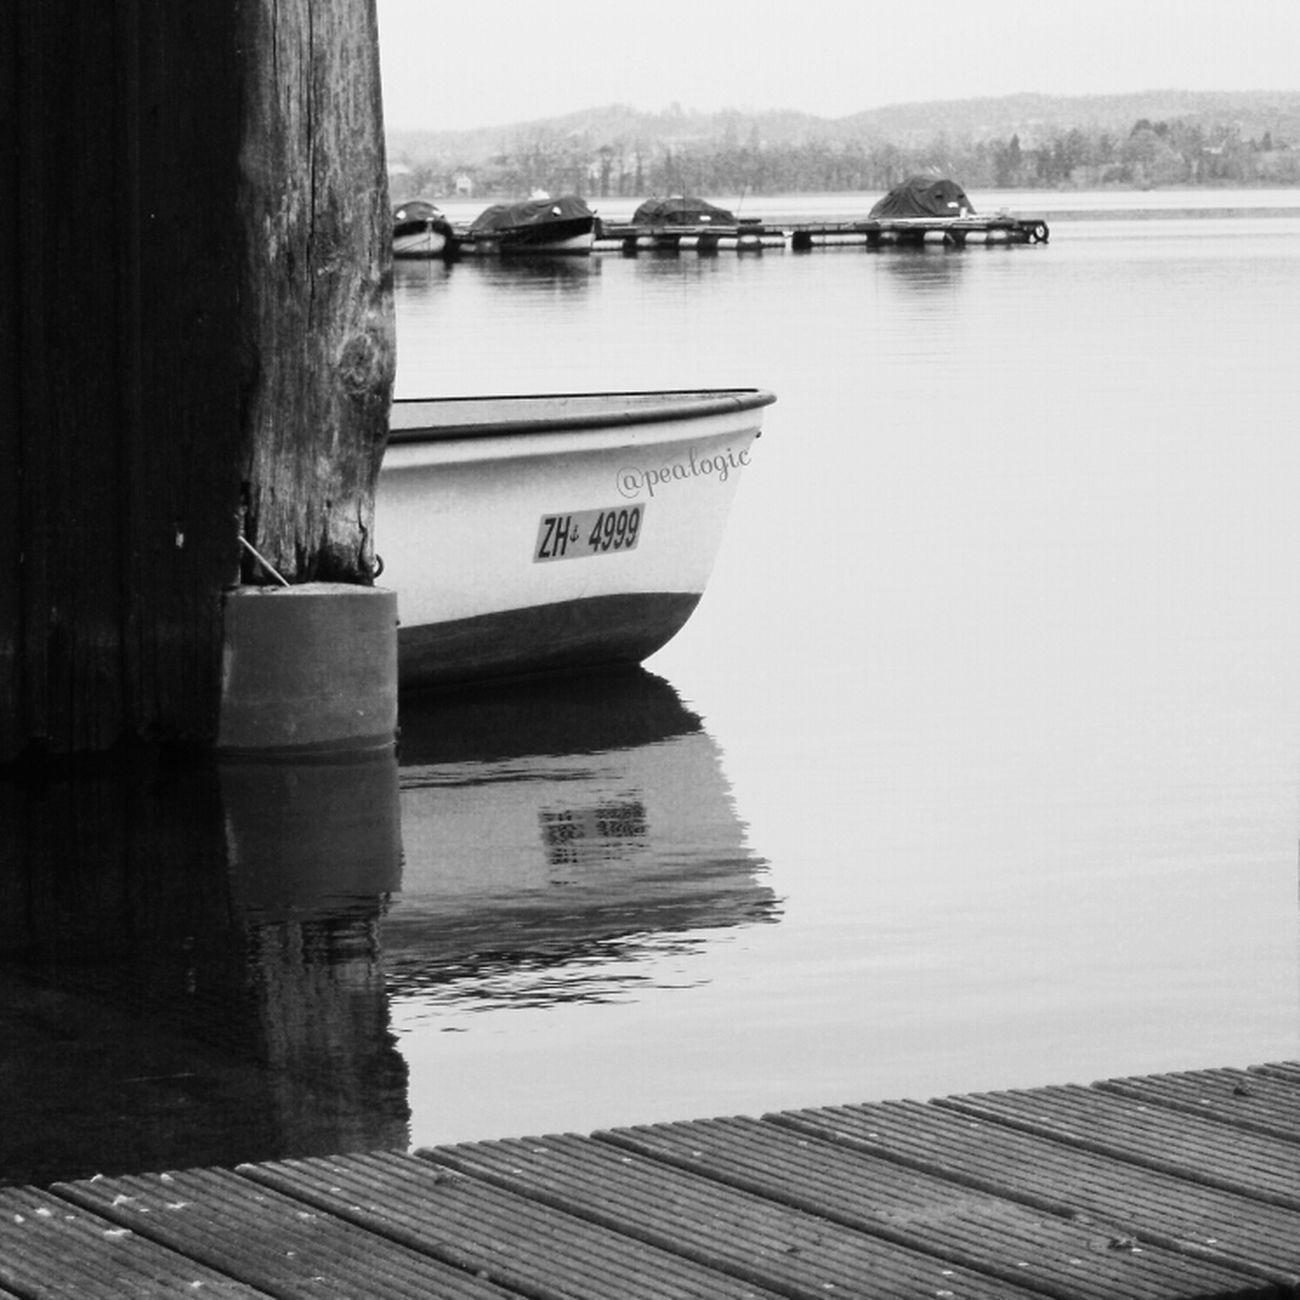 Hanging Out Water Boats Bwcollaboration Bws_worldwide Eye4photography  Ee_daily Bwstyles_gf EE_Daily: Black And White Sunday